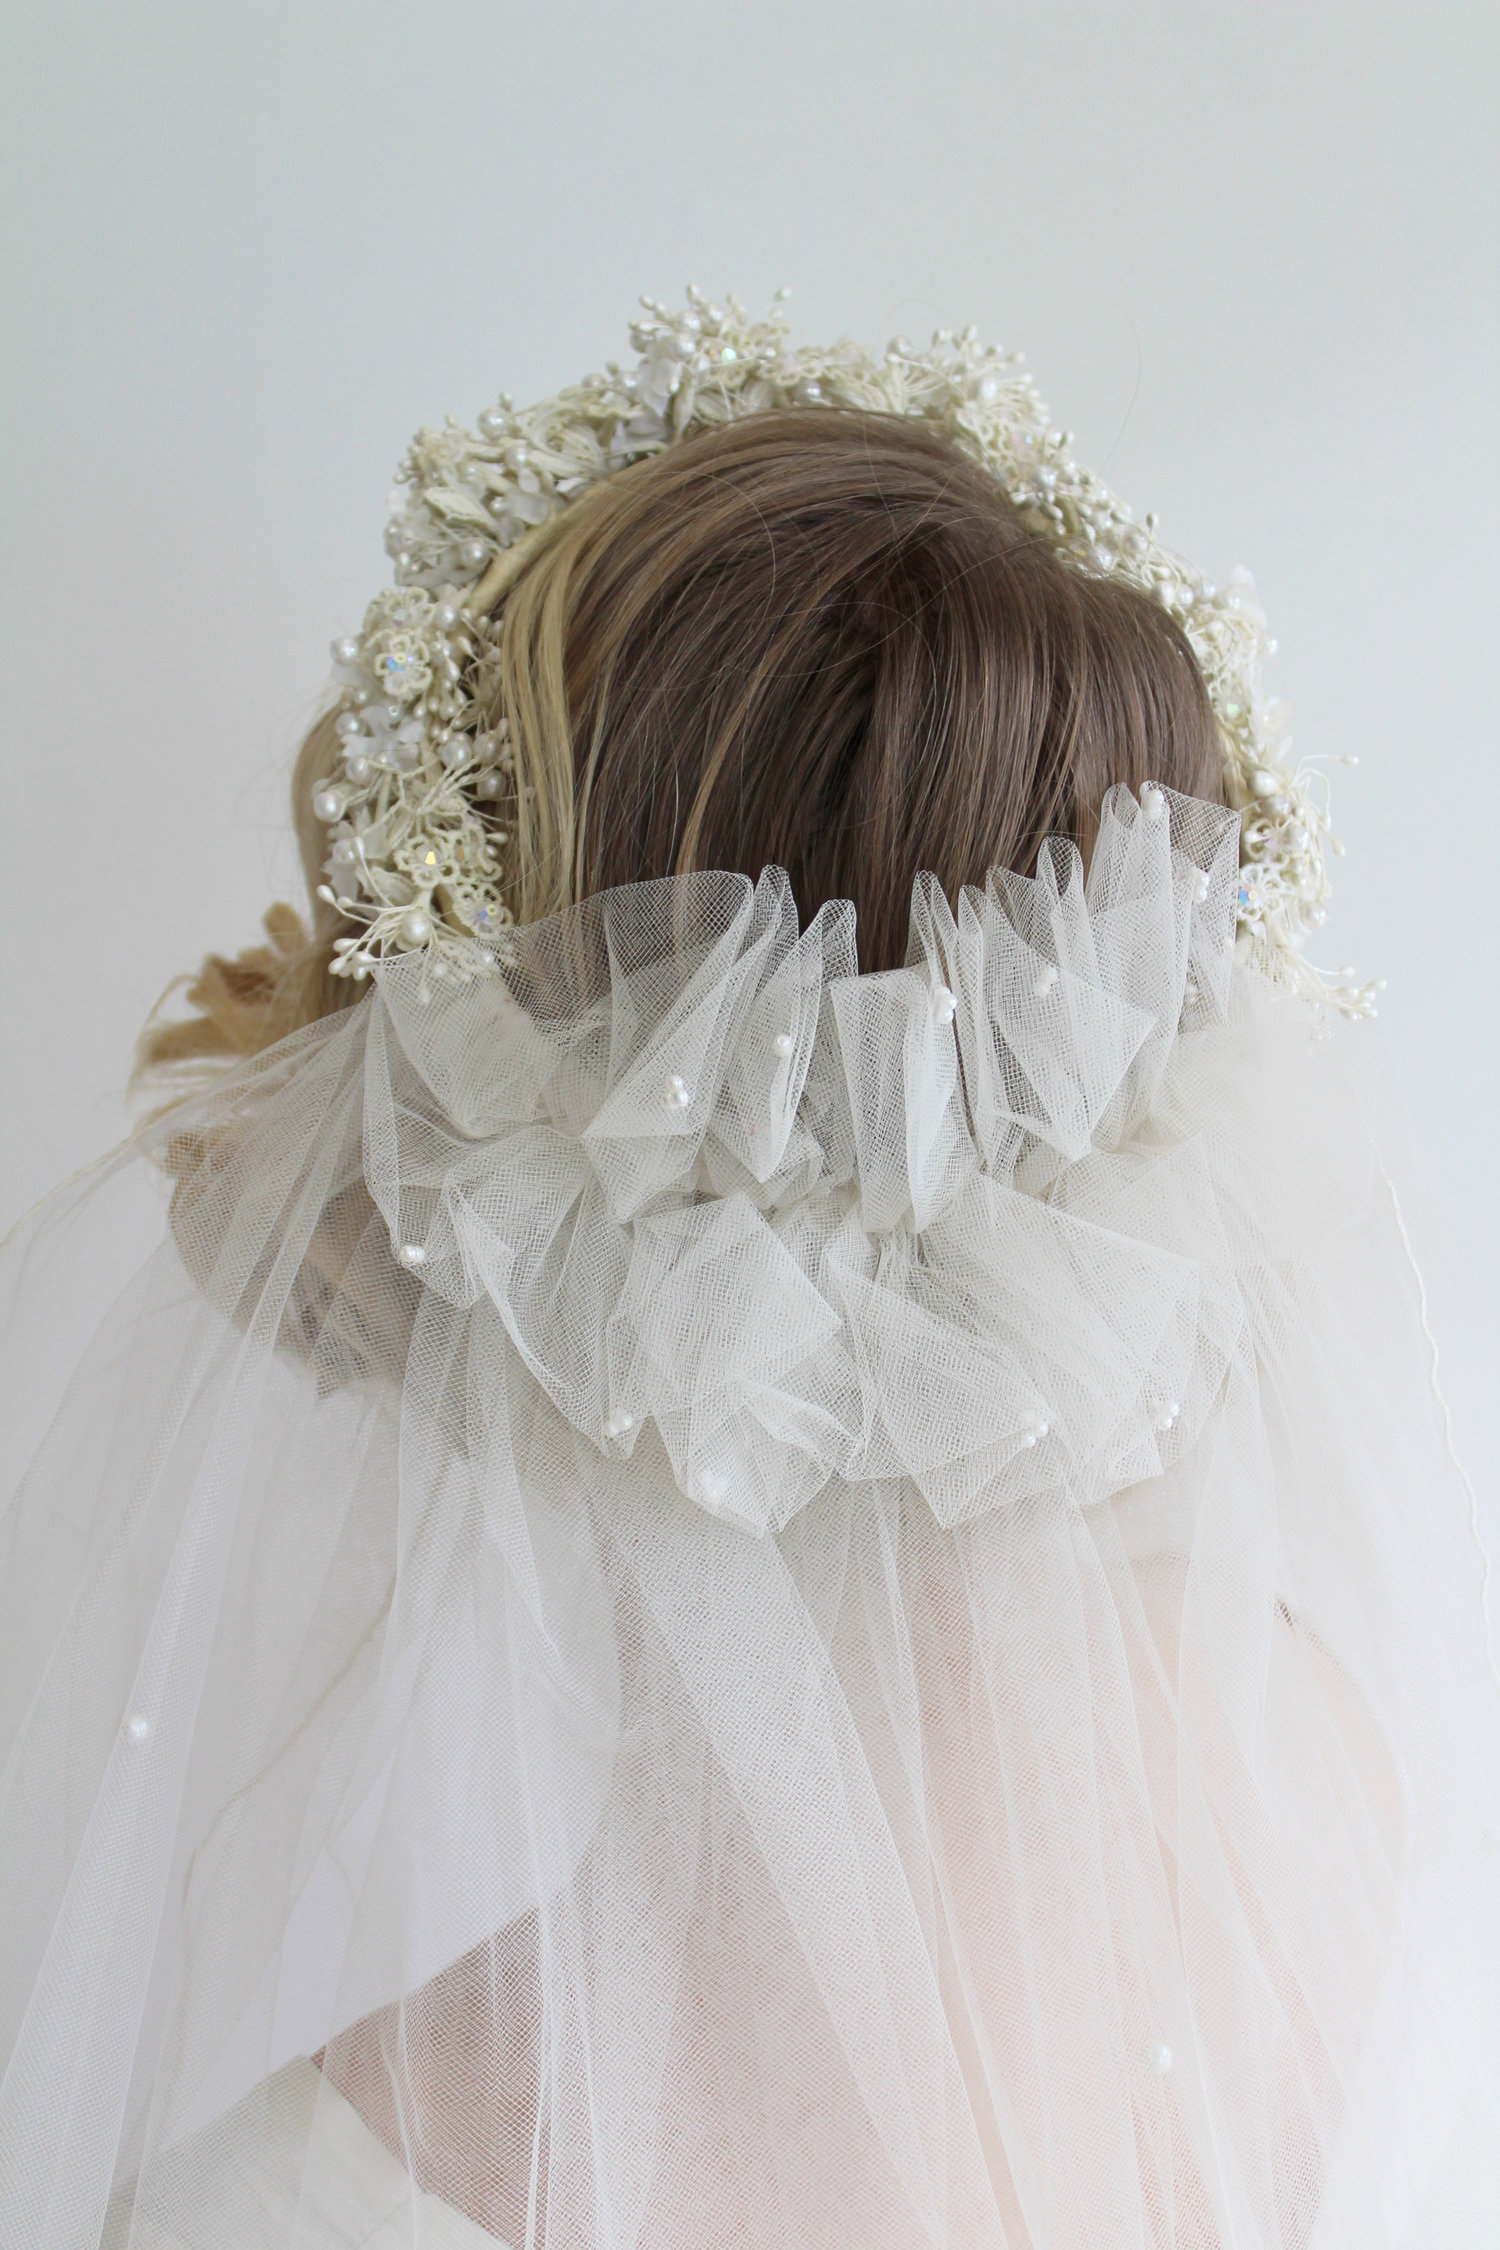 Vintage 1980s Flower Crown With Attached Veil With Pearl Details